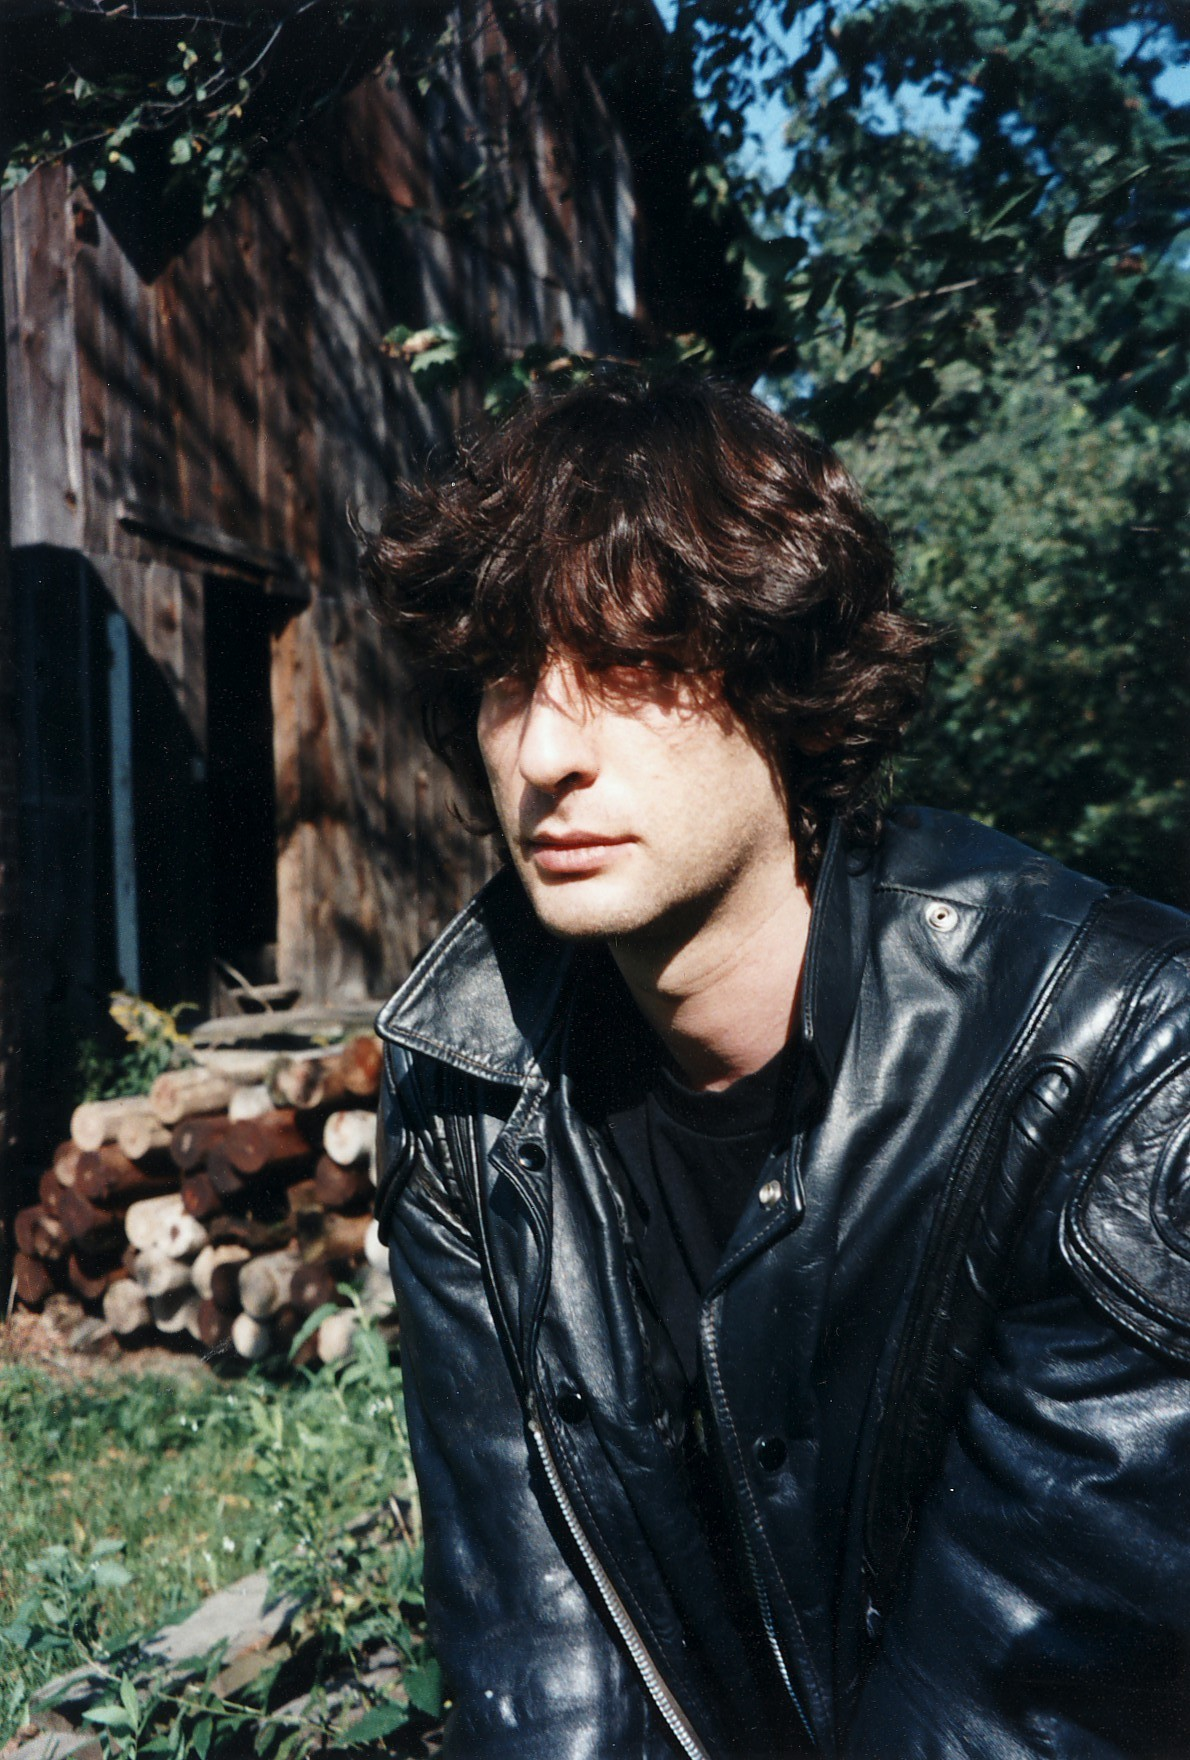 neil-gaiman:  Jill Thompson found some very old photos of me, which she presented me with this morning. This one is from 1995, or perhaps a little earlier. I scanned them to send to Amanda in Australia to cheer her up after her mini bike-accident today.  I thought I'd post this one, as the most amusing of the lot. I am so brooding. Look I am so brooding. This is me being brooding. In case you were wondering I am brooding or something.